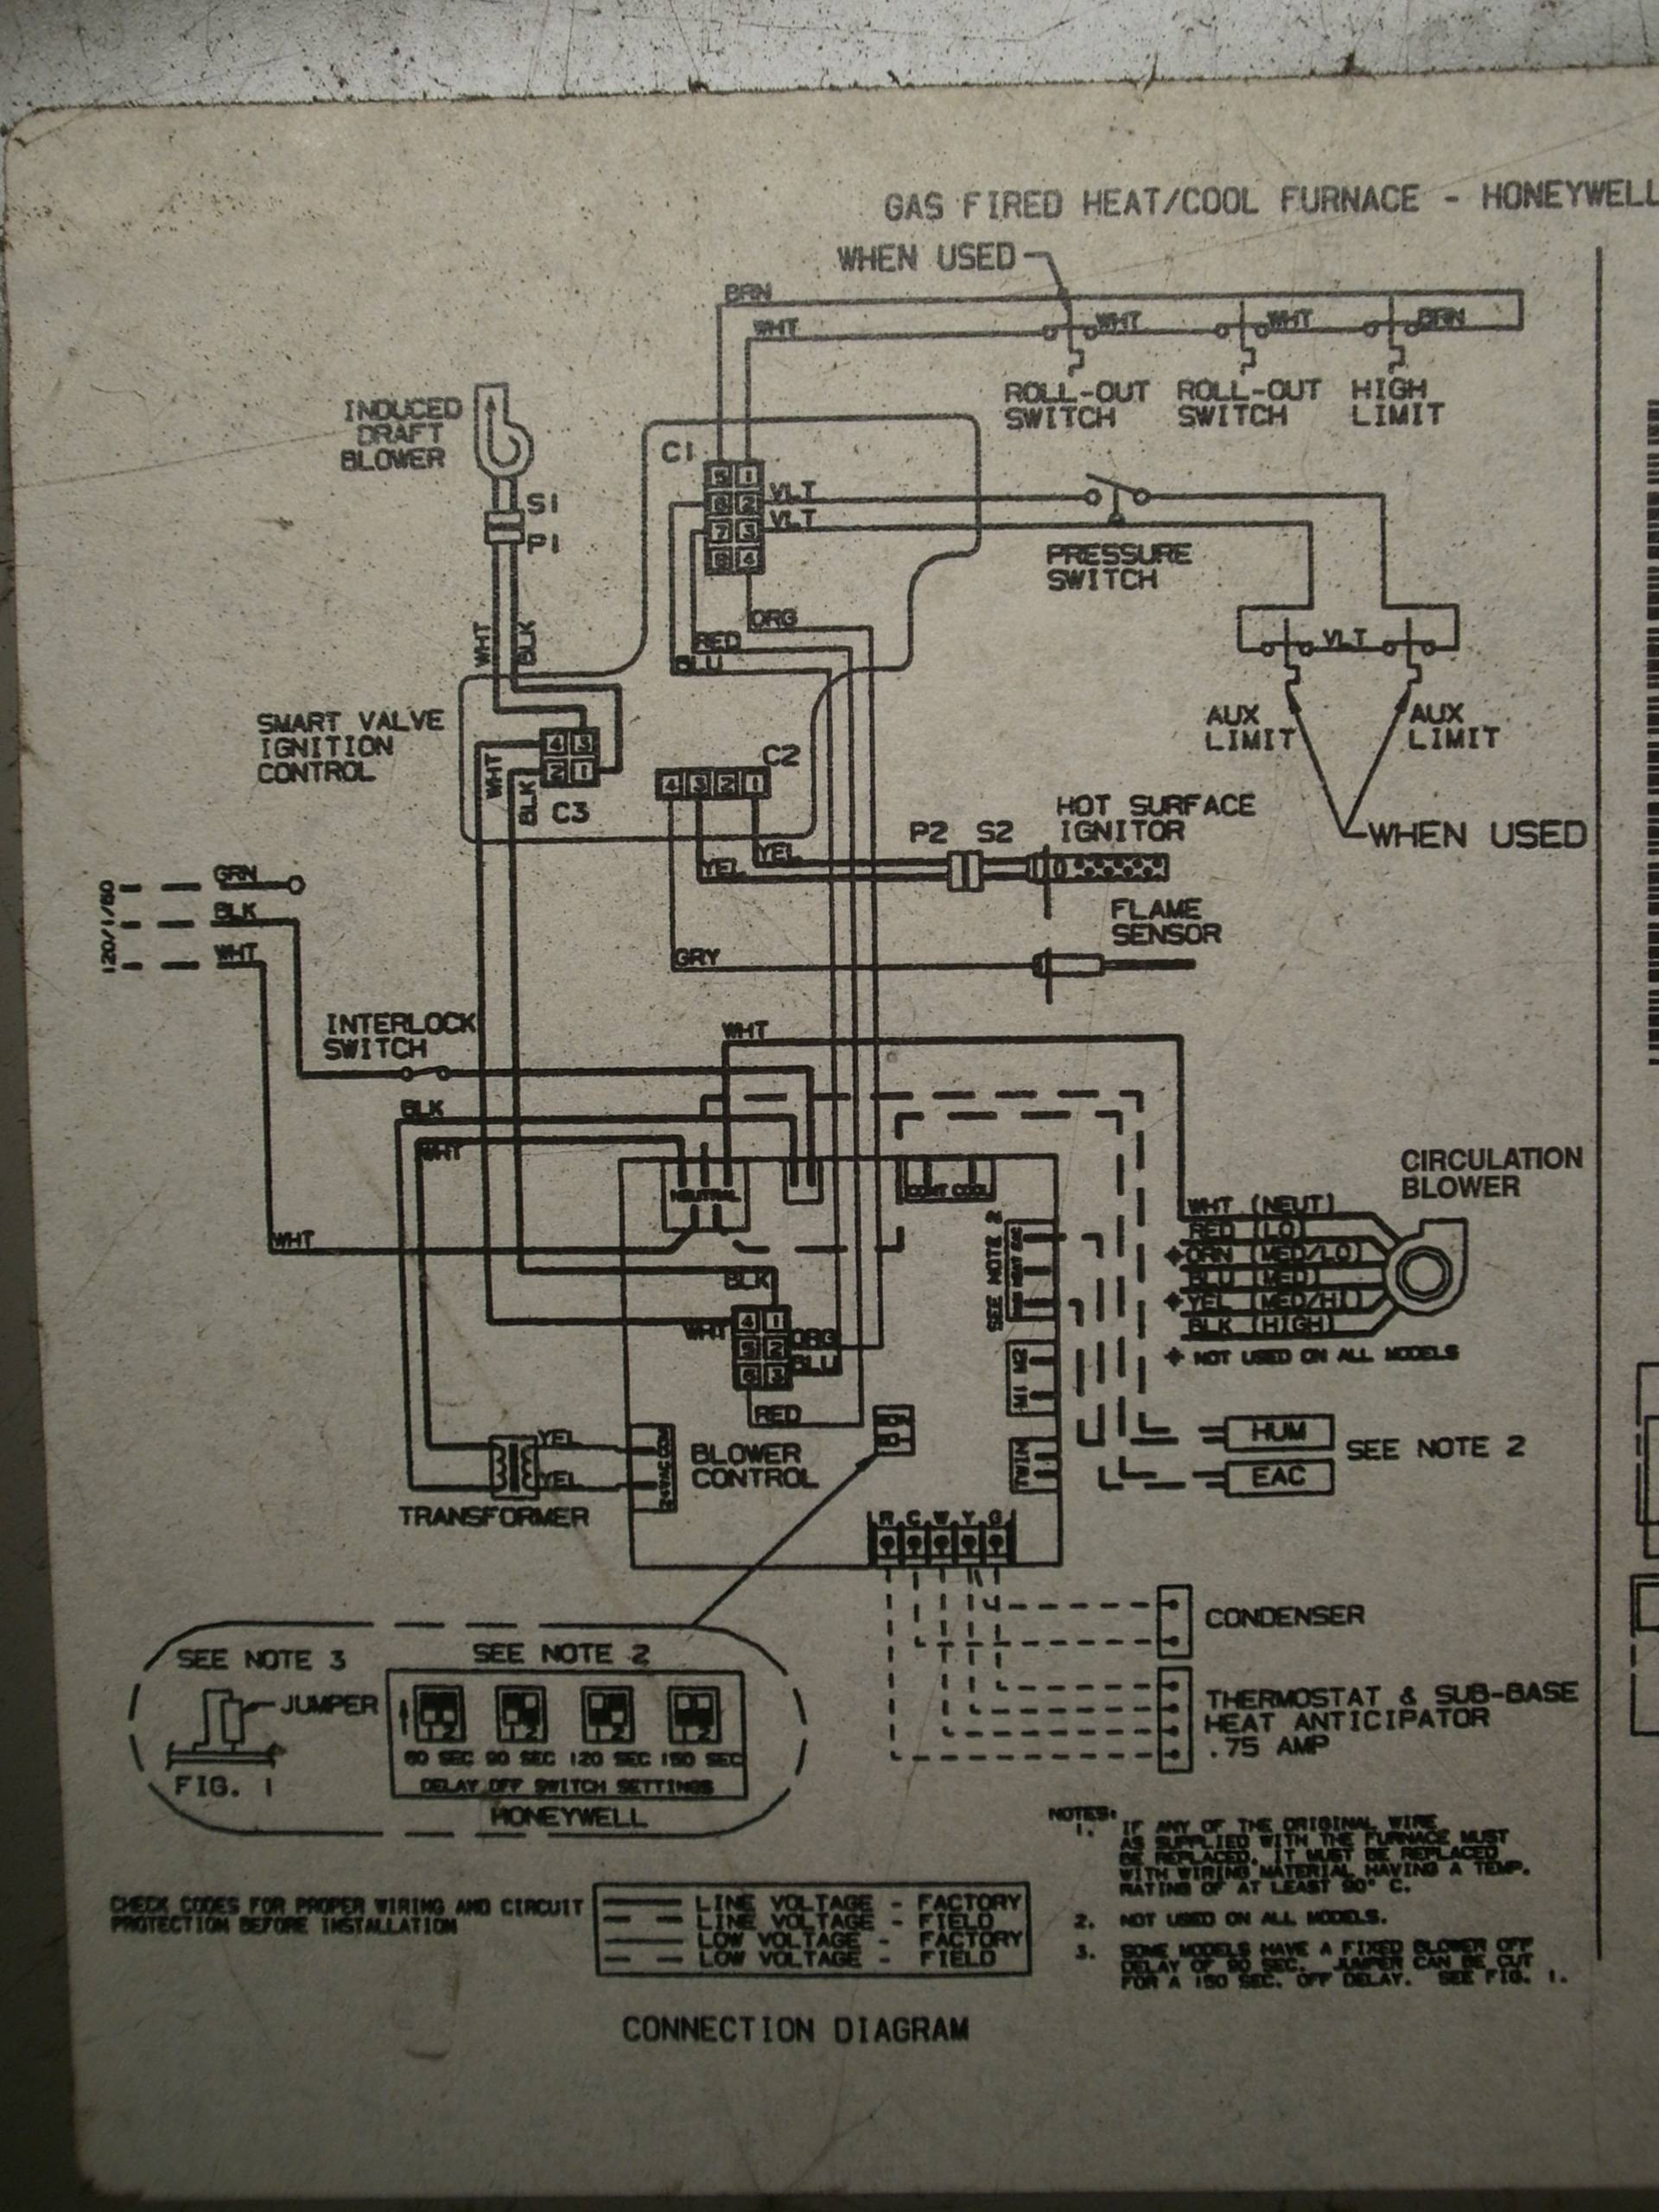 Furnace Blower Wiring Diagram Motor Repalcement Parts And Diagram